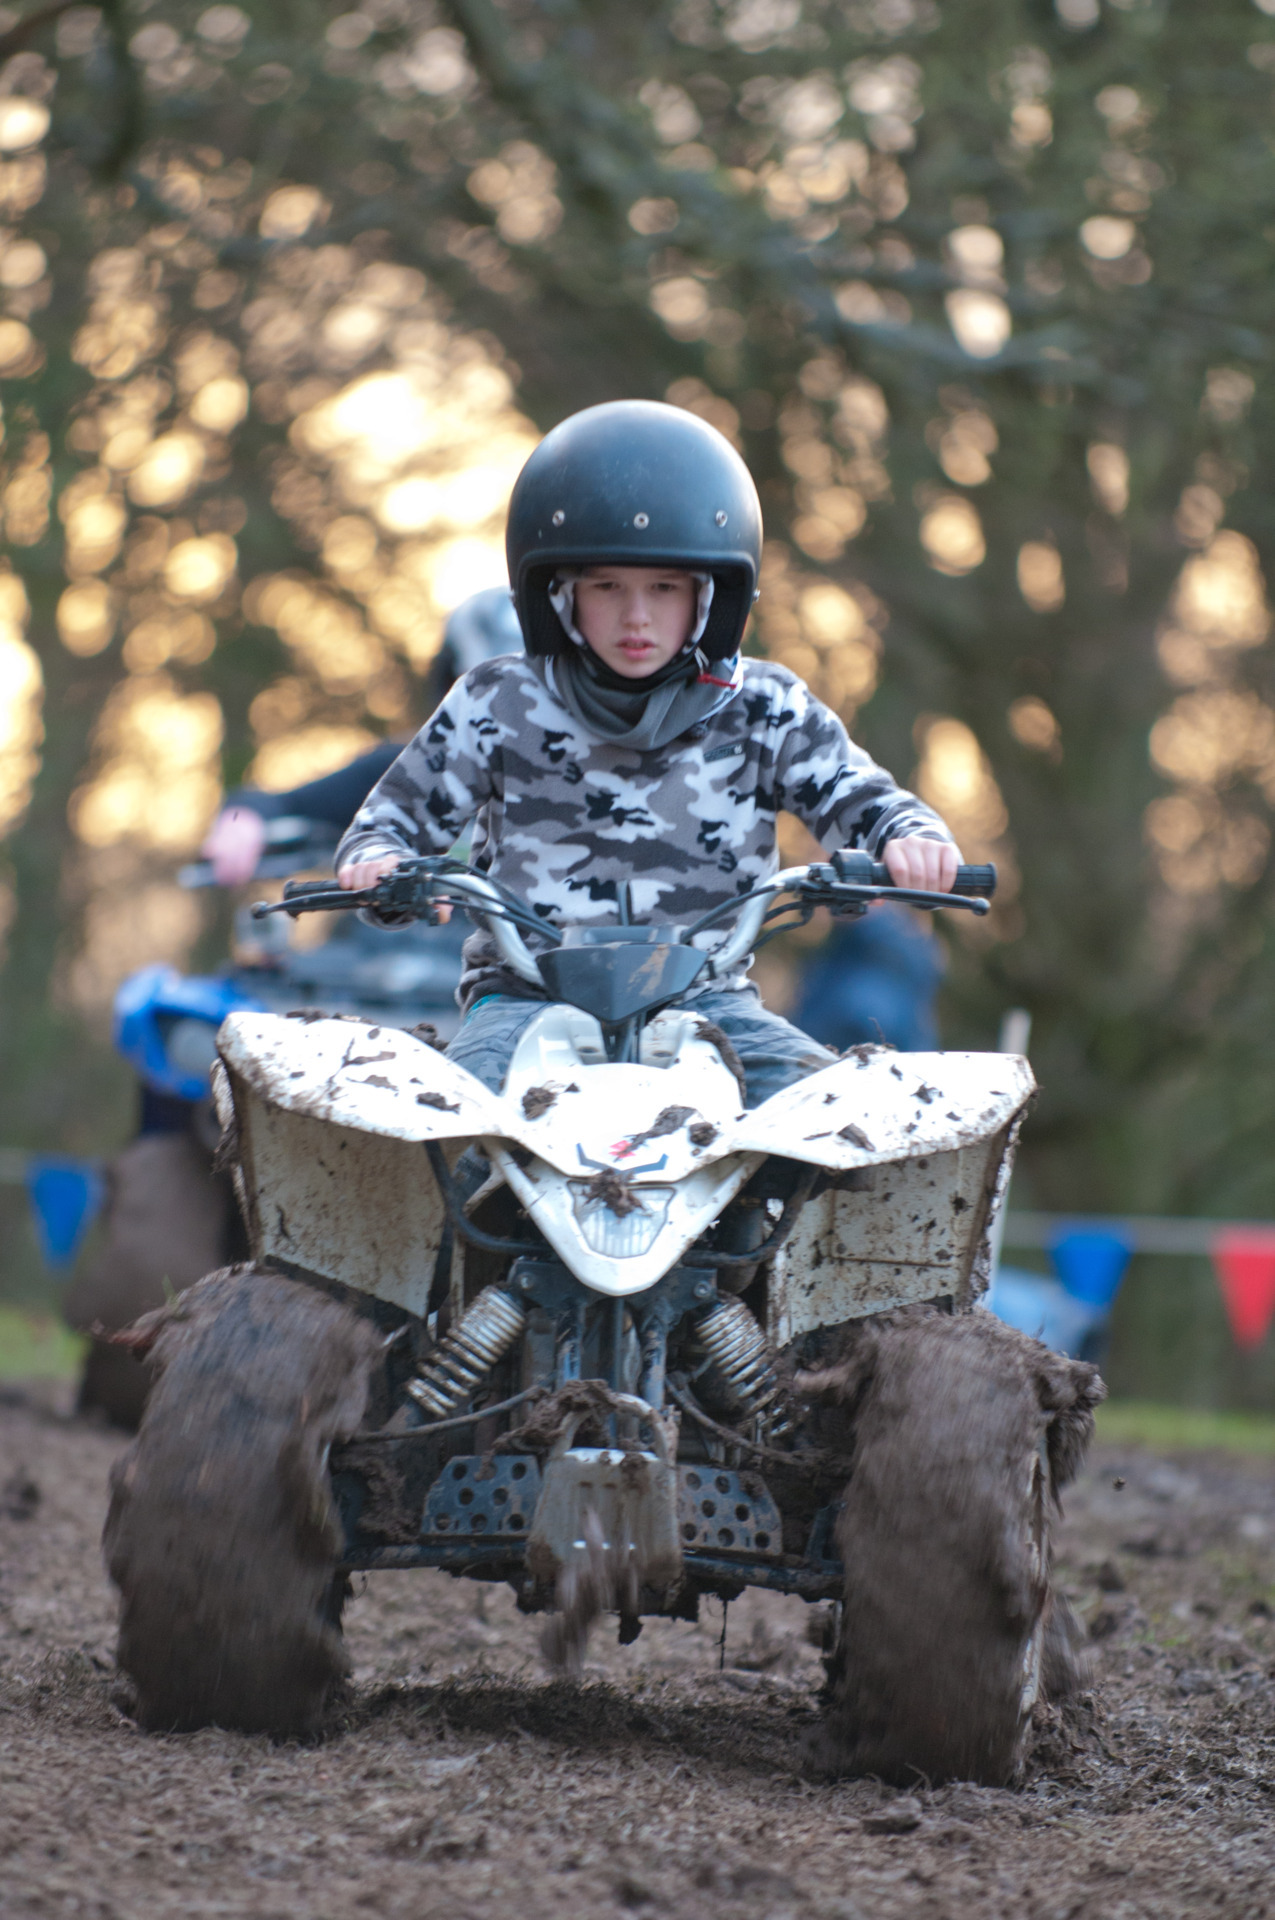 Quadbiking at #wintercamp #iScout